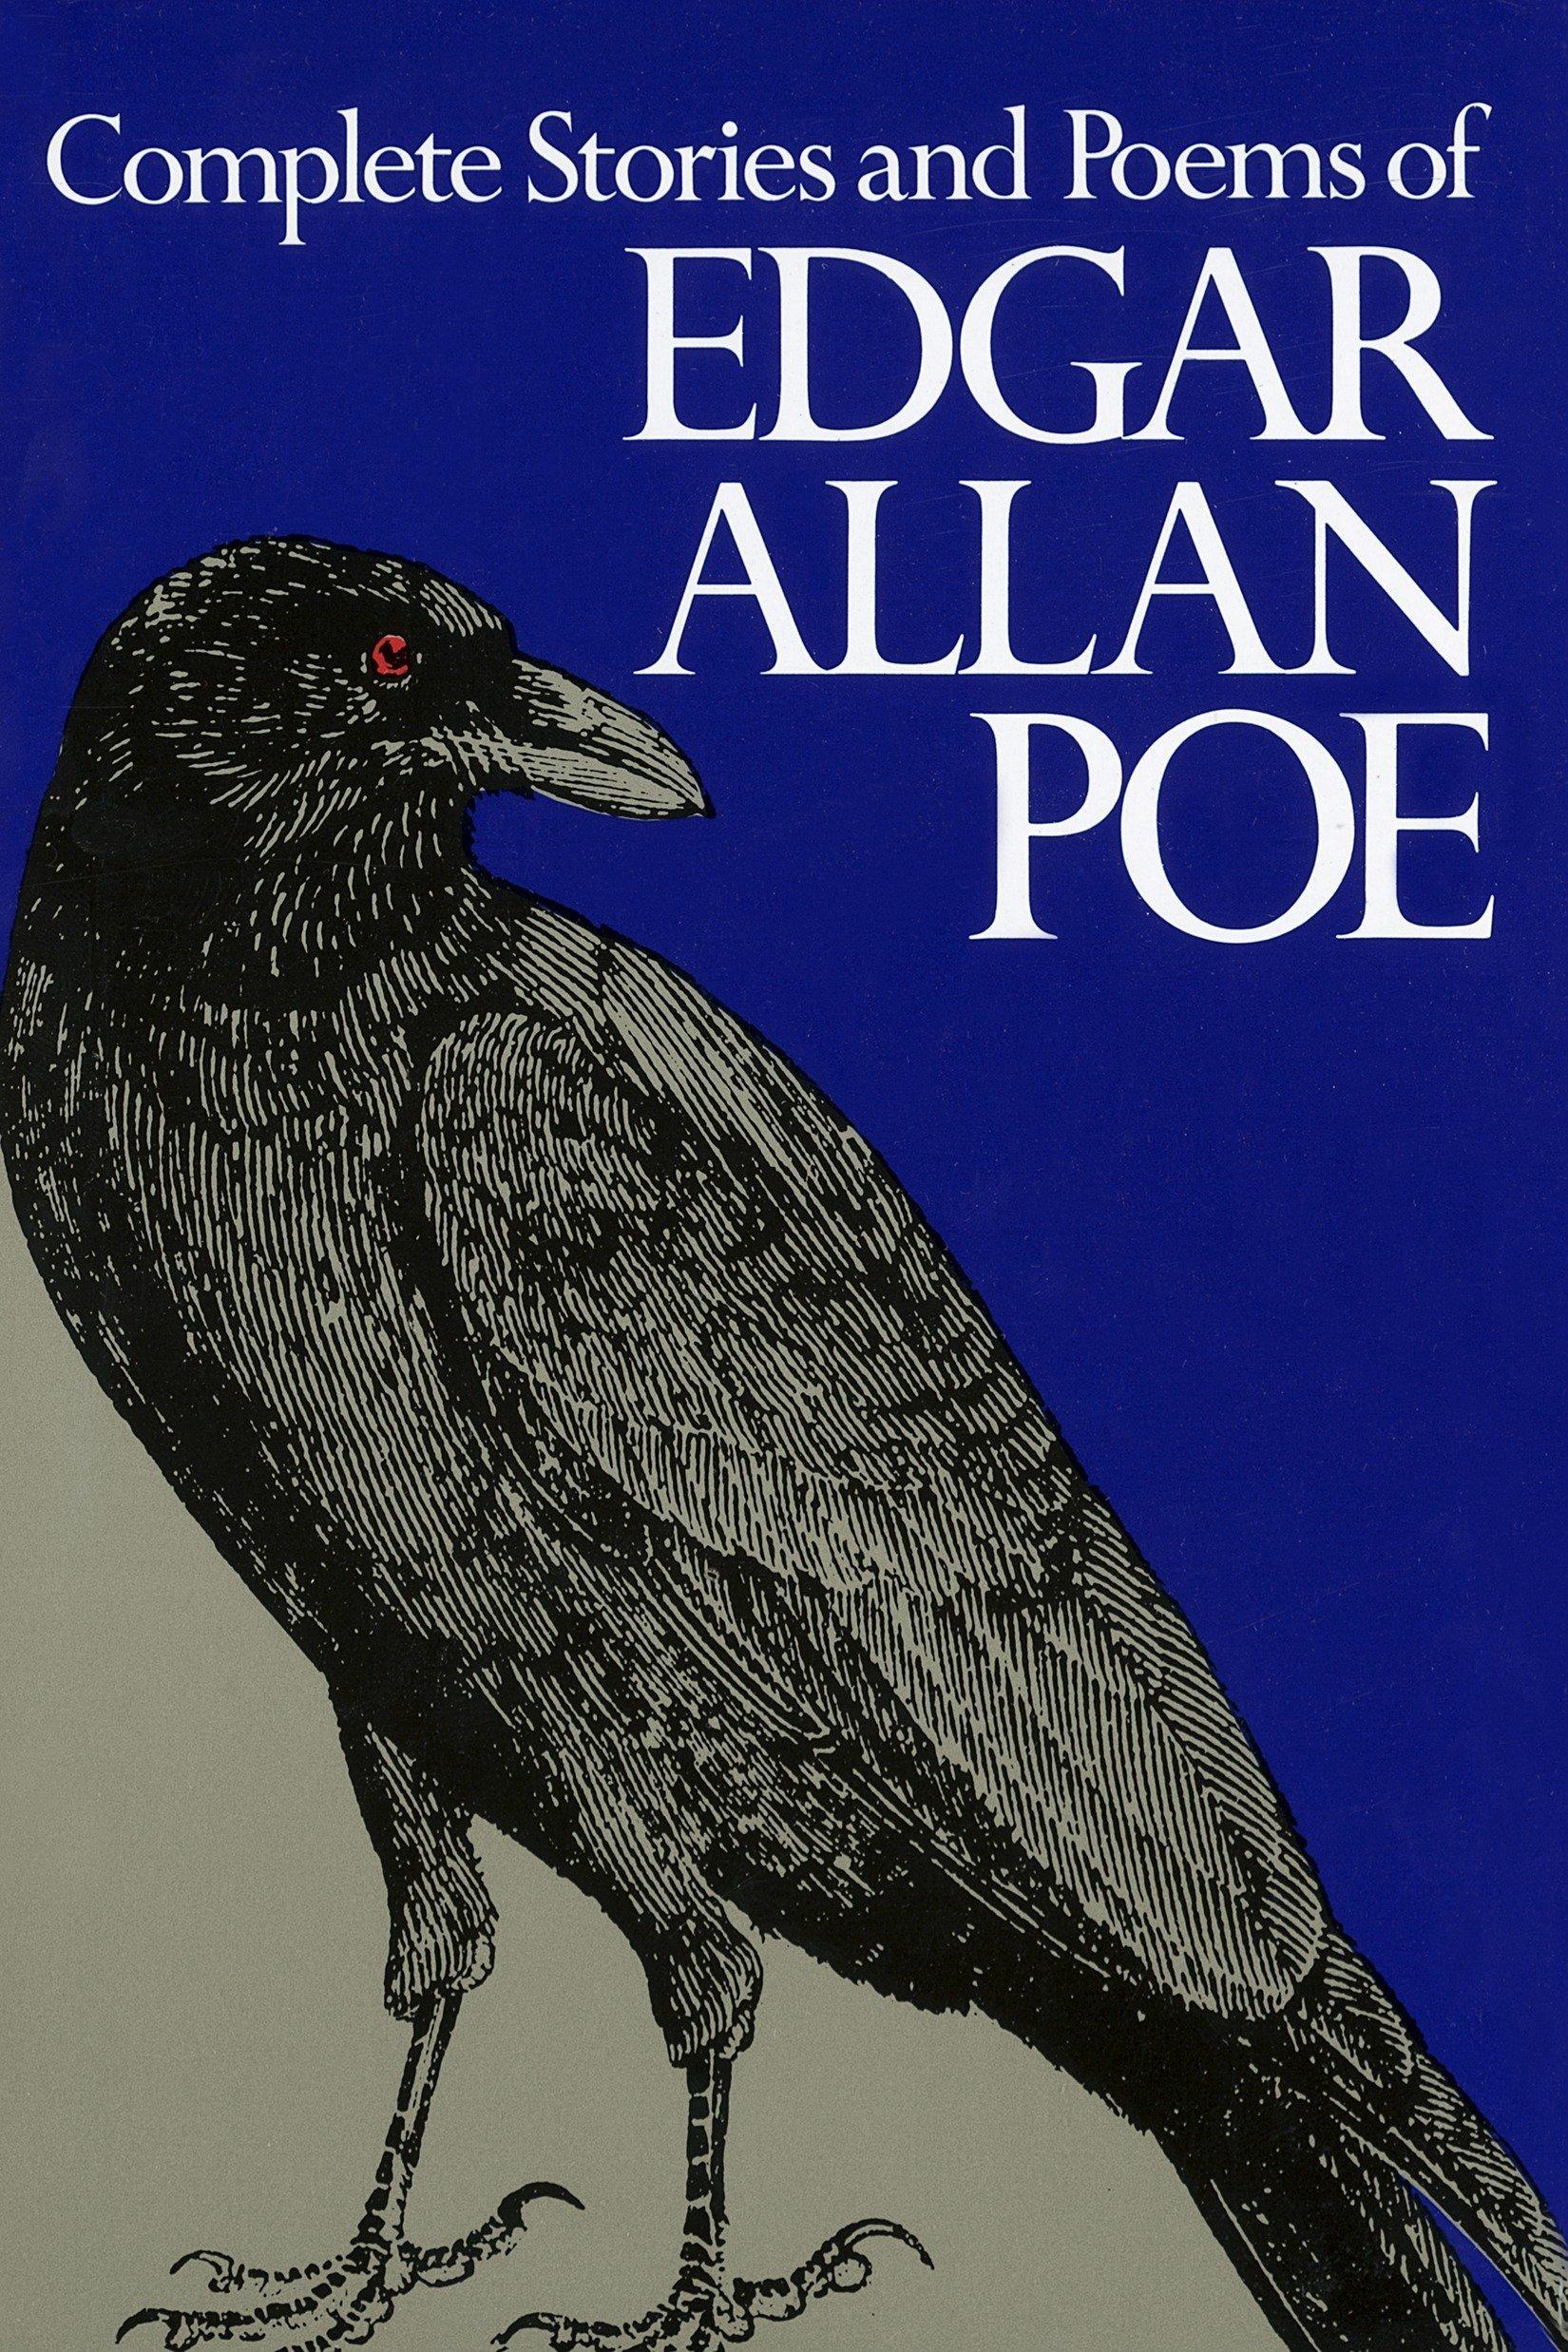 Image result for Complete Stories and Poems of Edgar Allan Poe